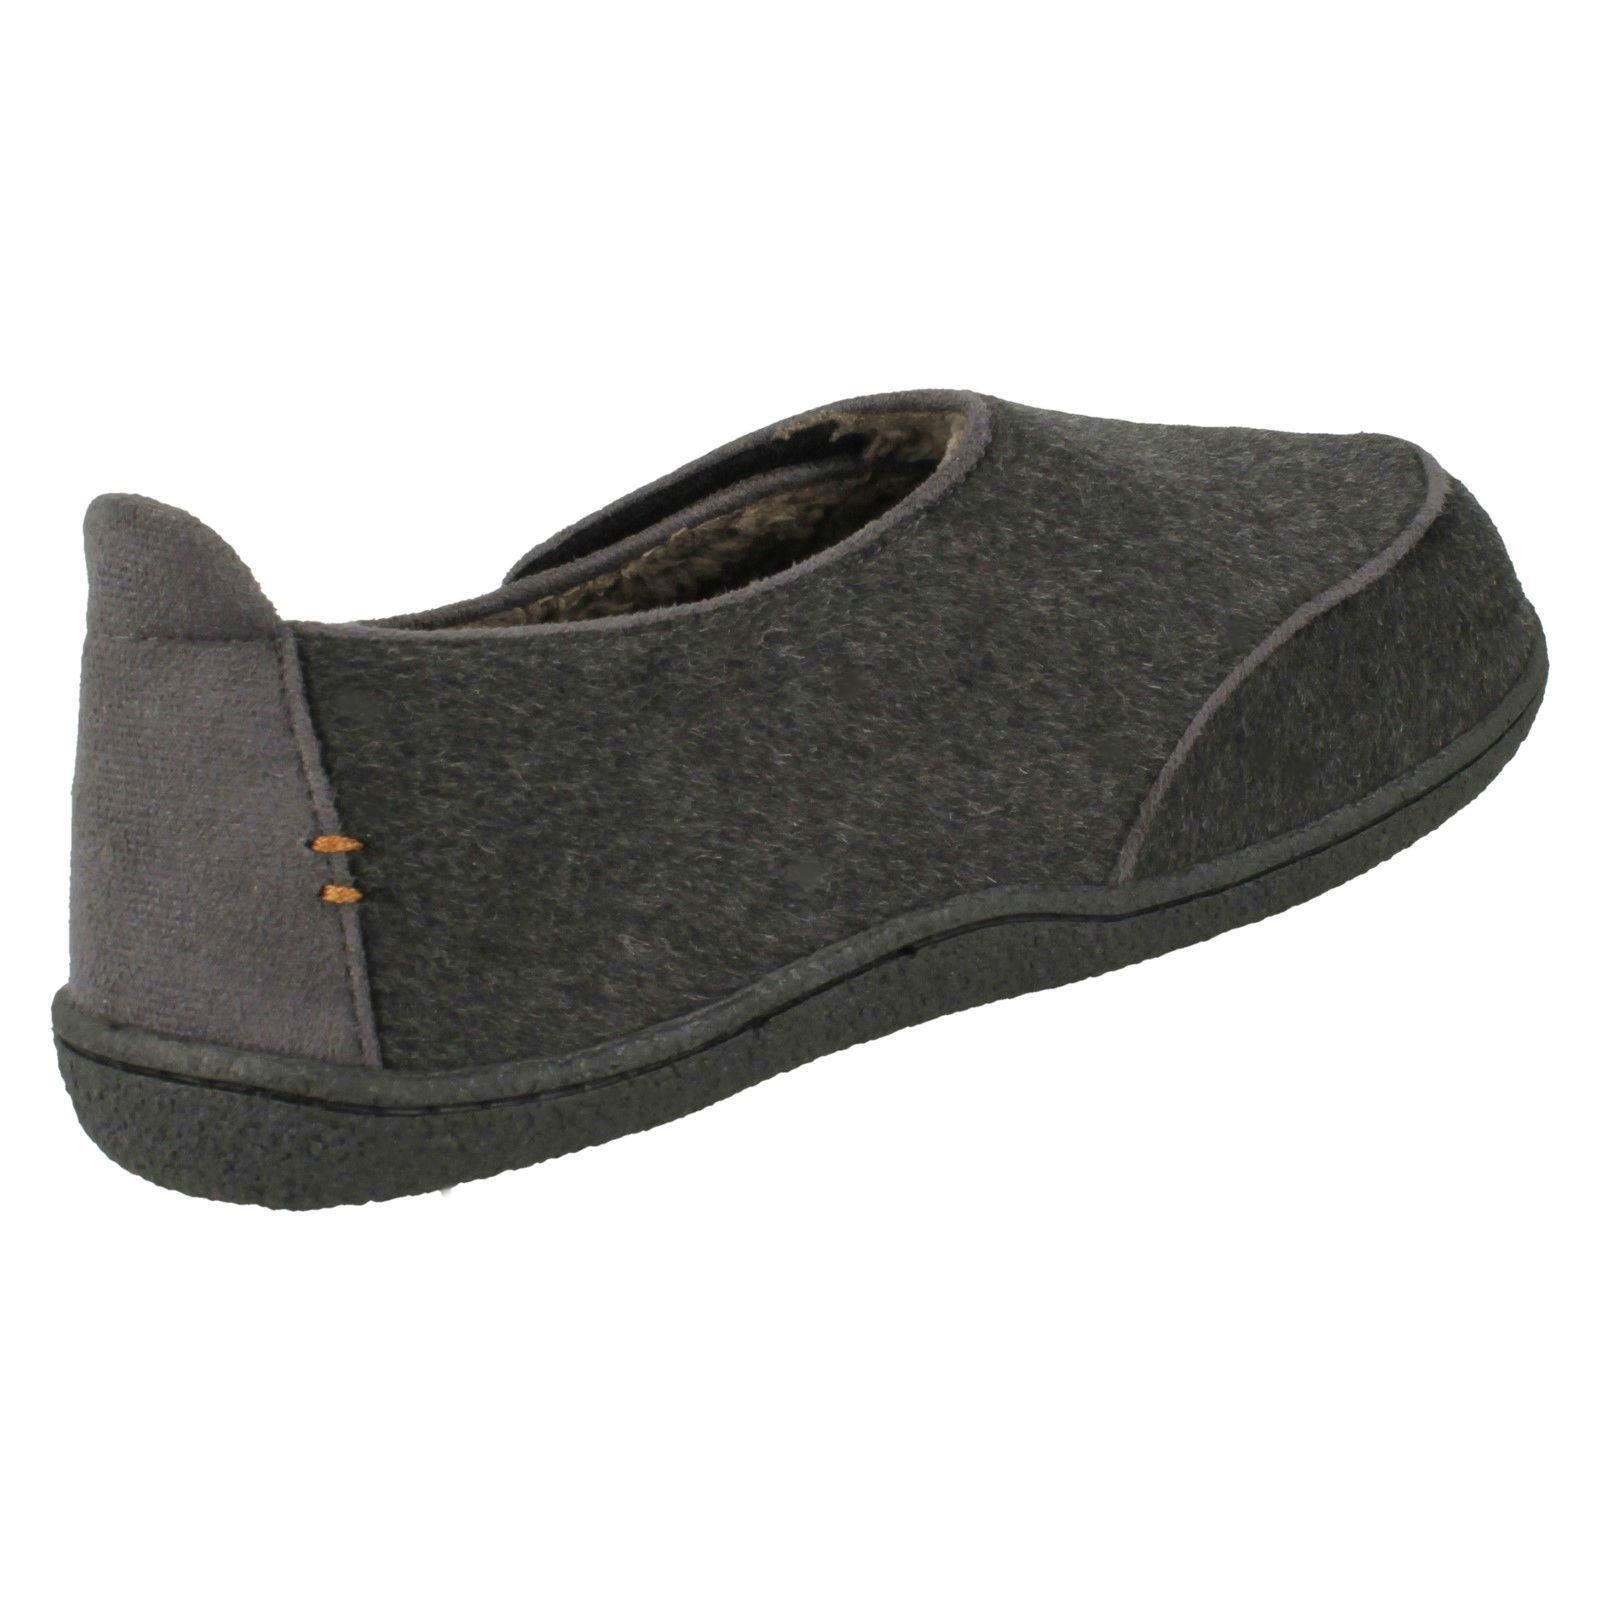 Mens Clarks Warm Lined Slippers Relaxed Charm